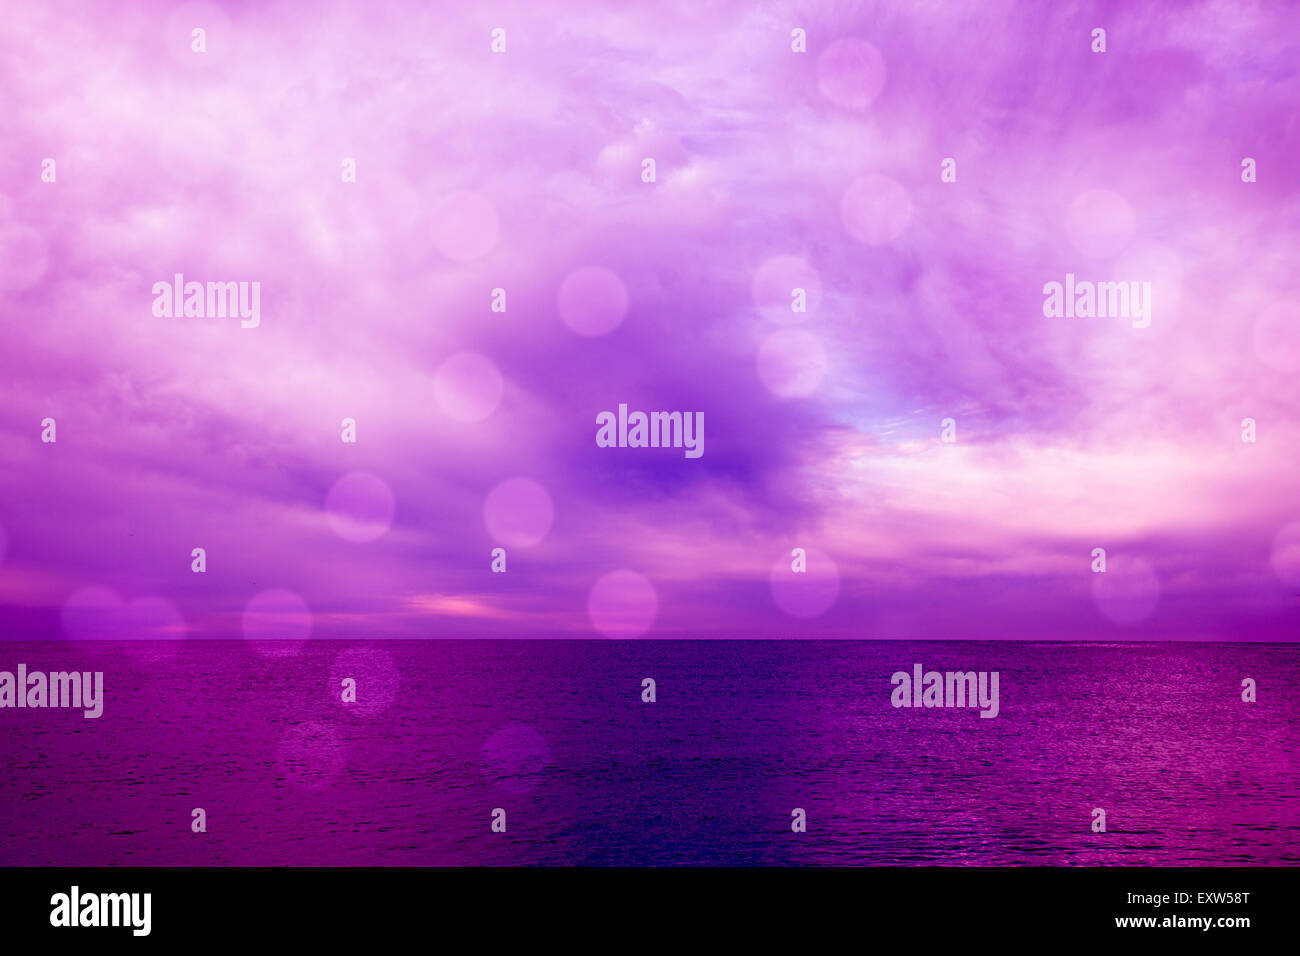 Dramatic seascape in magenta with light bokeh - Stock Image